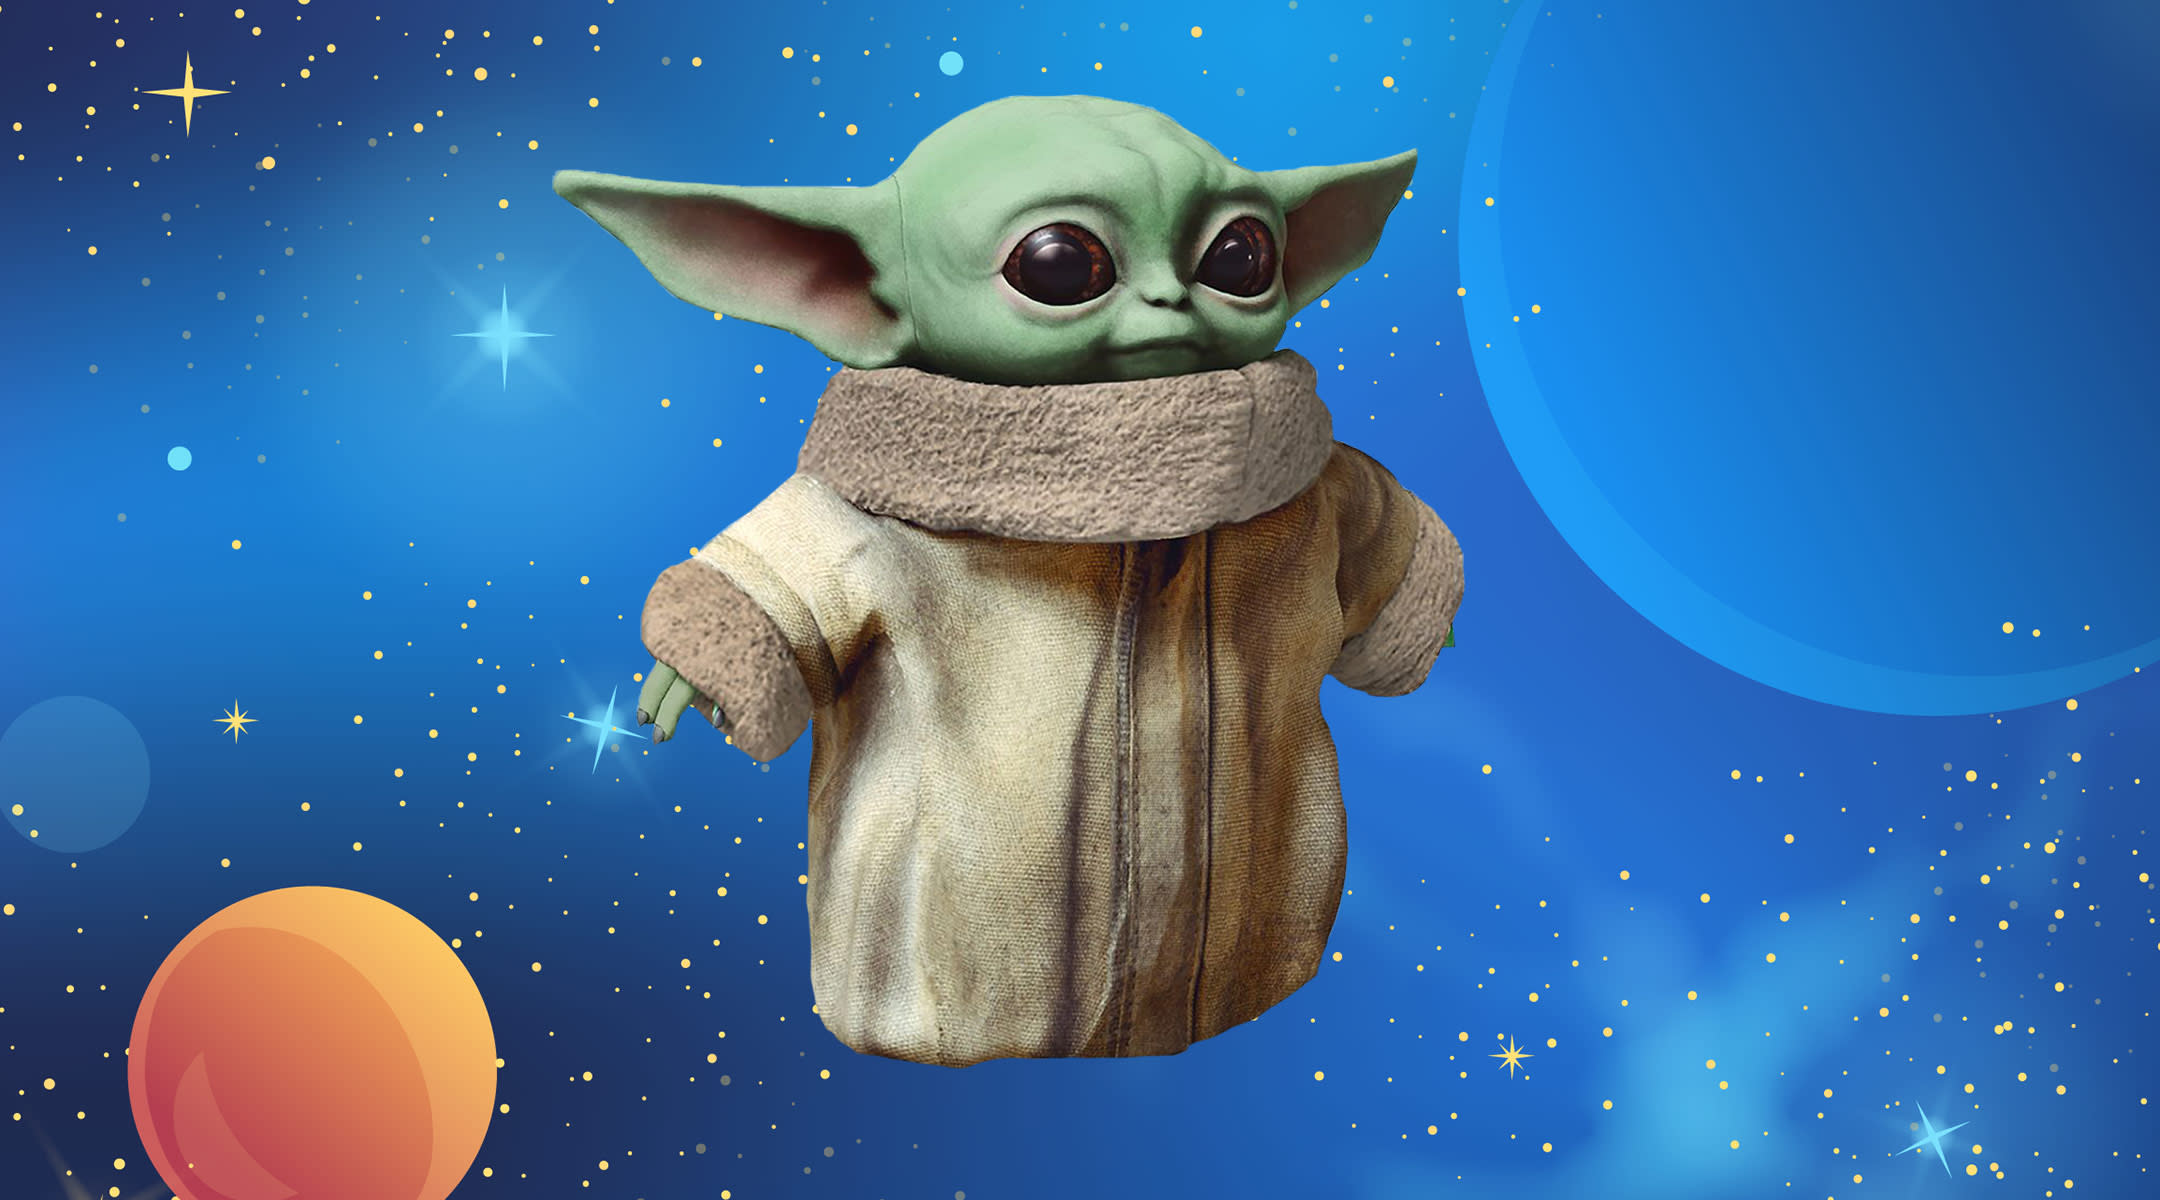 yoda baby toy released by disney plus